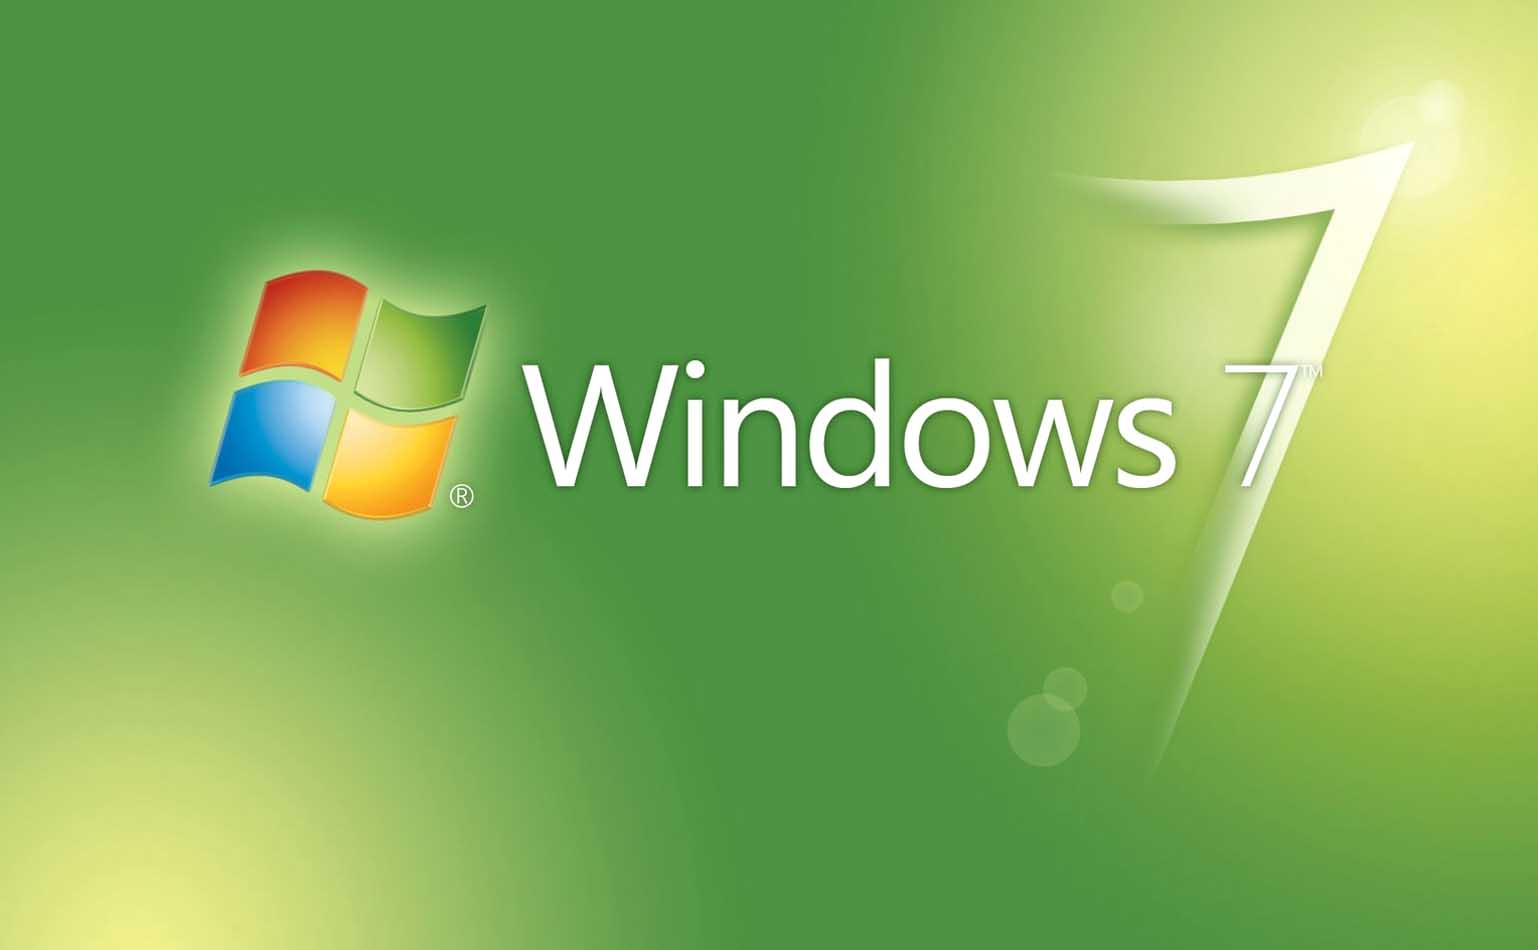 download windows 7 ultimate 3d wallpaper gallery